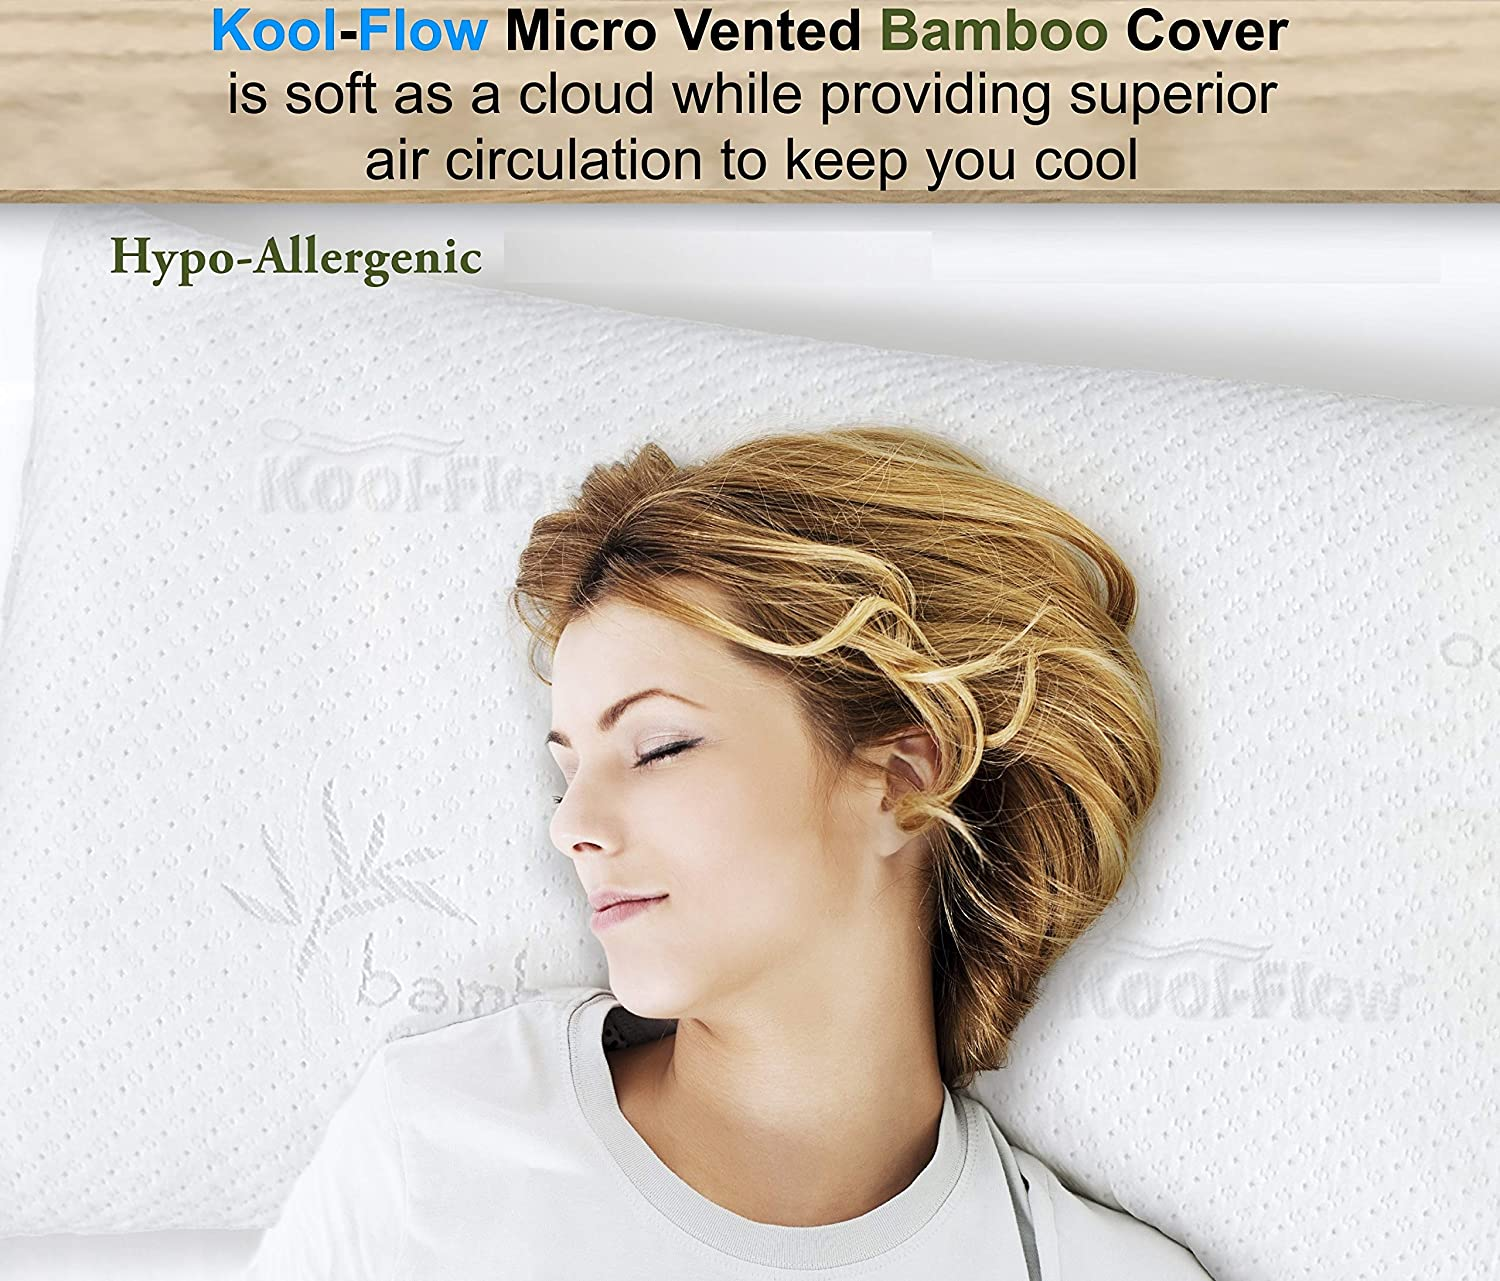 Xtreme Comforts - how to choose a pillow